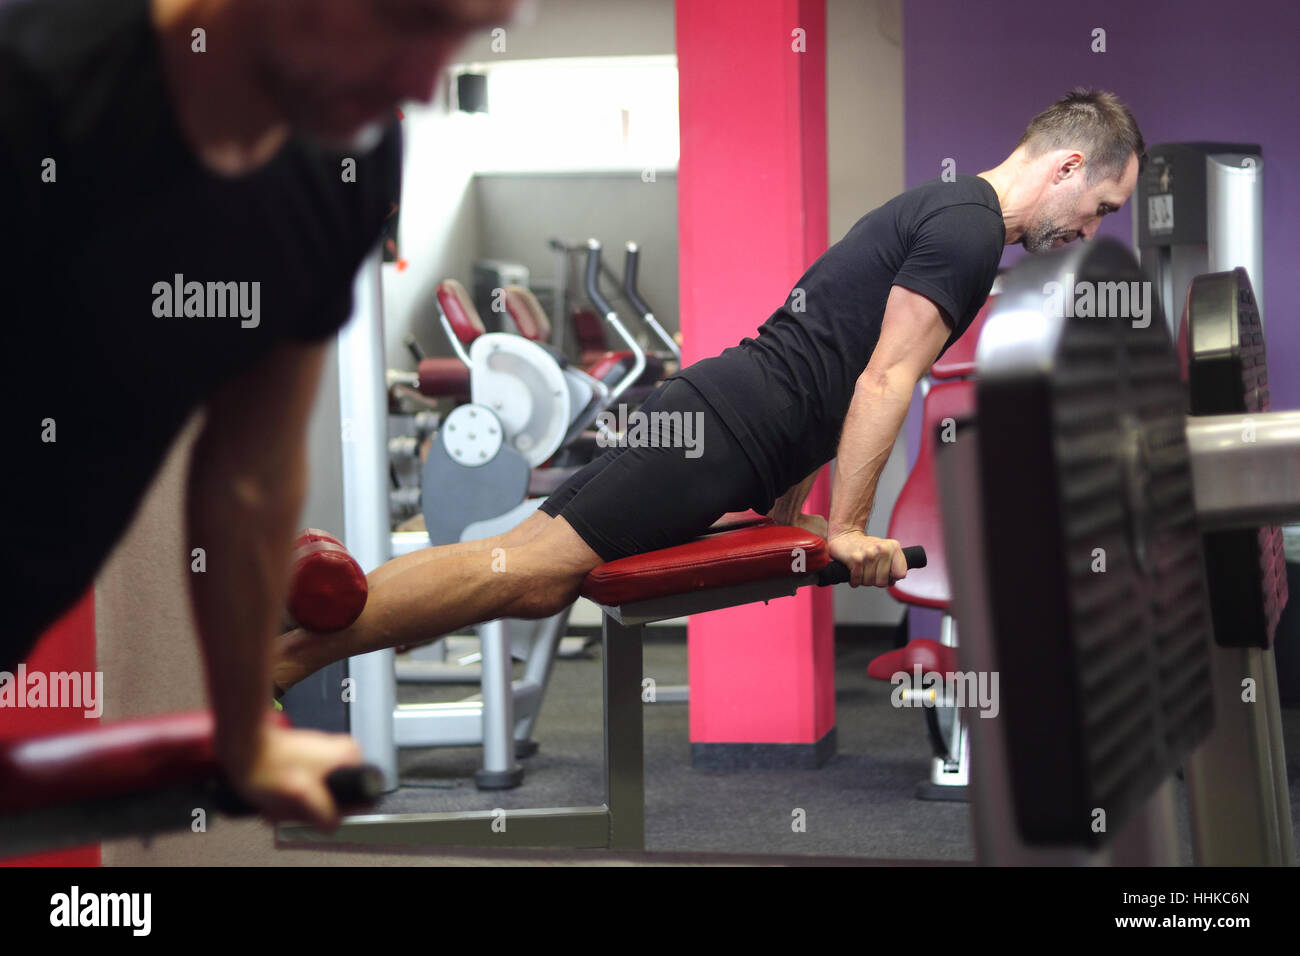 gym chest chair thomasville company man doing exercise using roman in stock photo 131348413